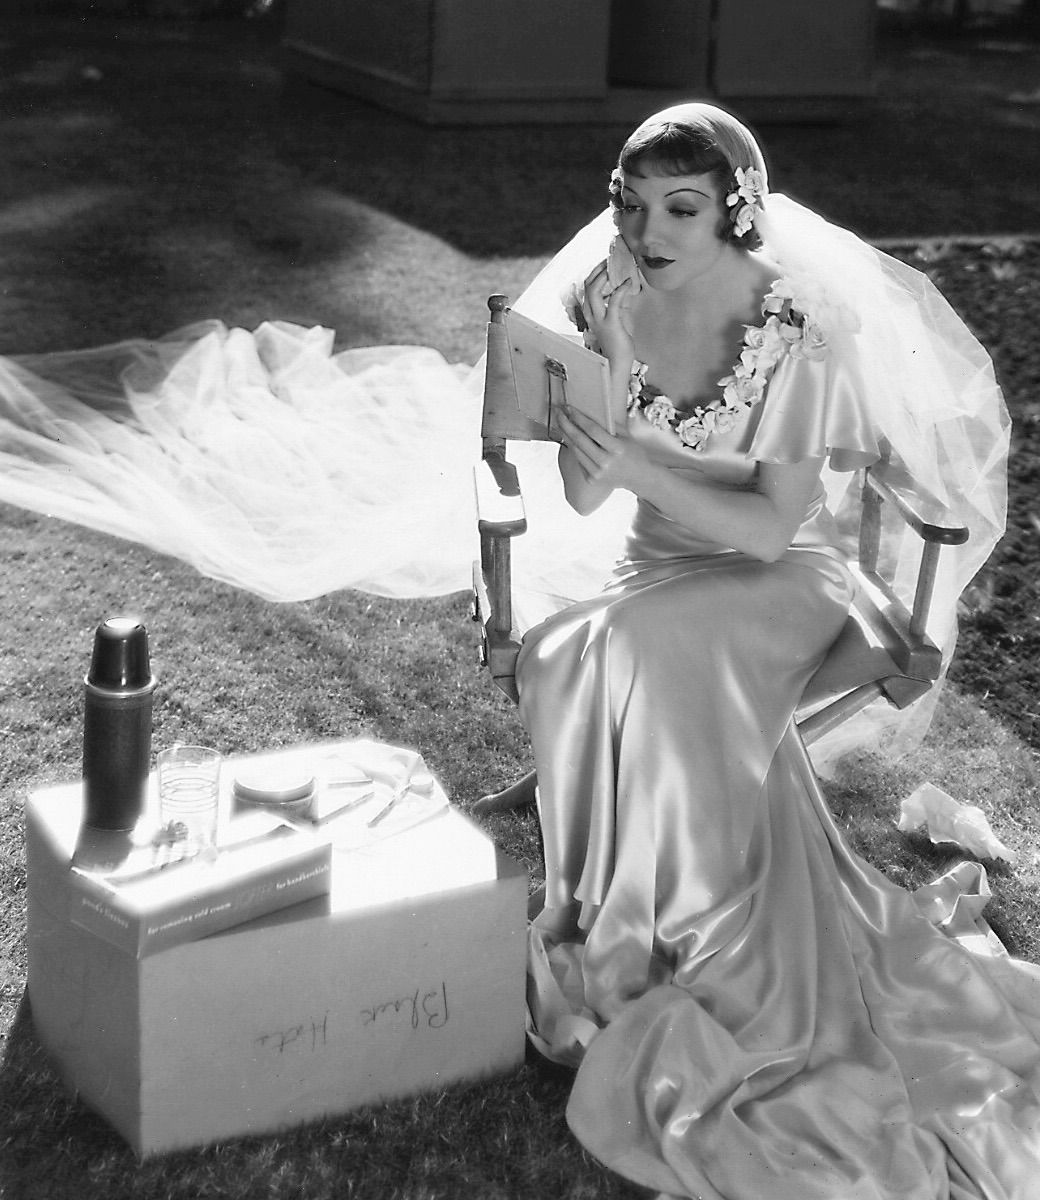 Claudette Colbert touching up her makeup on the set of It